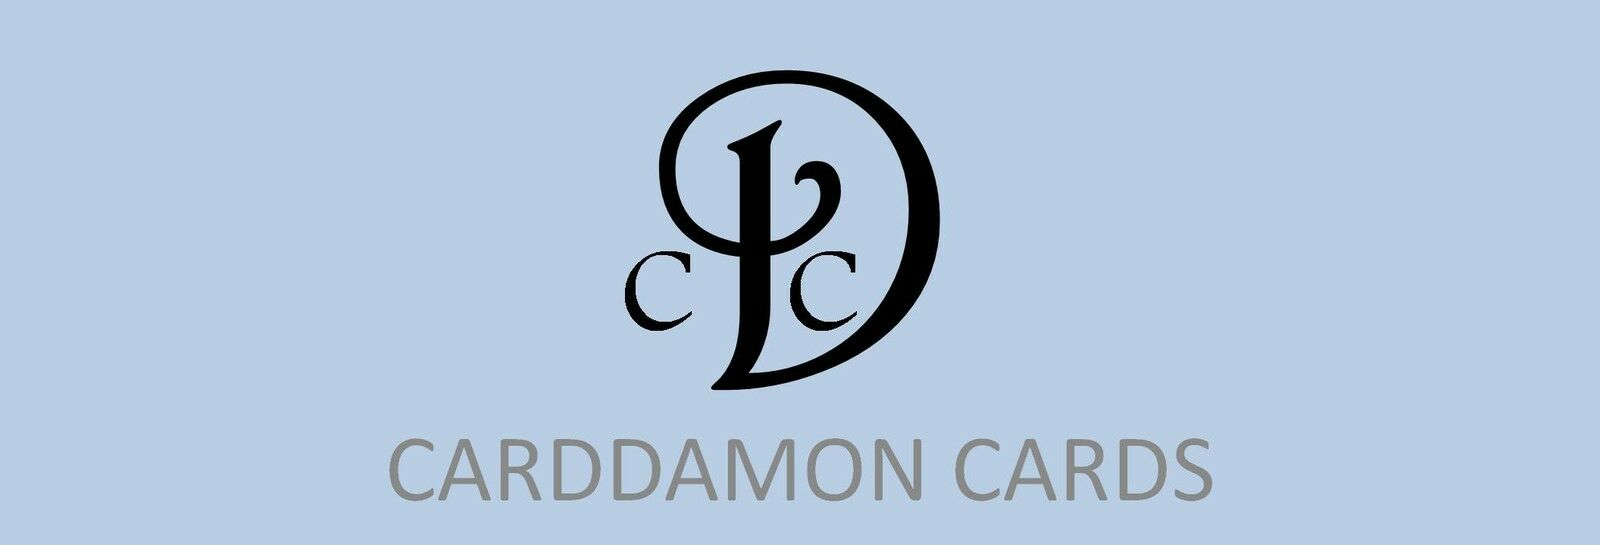 CARDDAMON CARDS